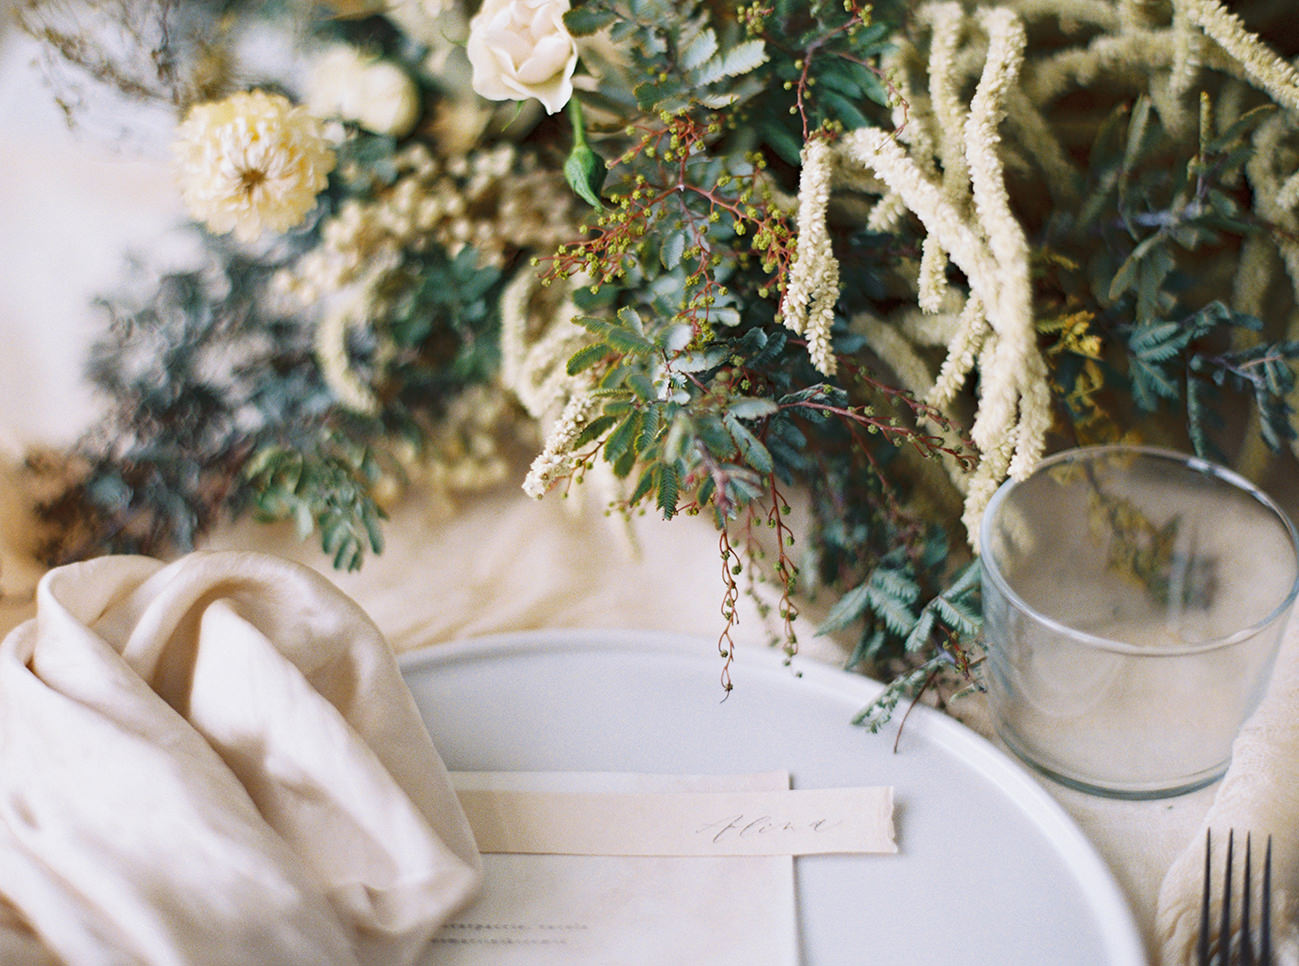 Bridal Inspiration, Wedding Bouquet, Hääkuvaus, Film Wedding Photographer, Table Setting Inspiration, Stationery, Dried Flowers, www.nordandmae.com, www.susannanordvall (20).jpg